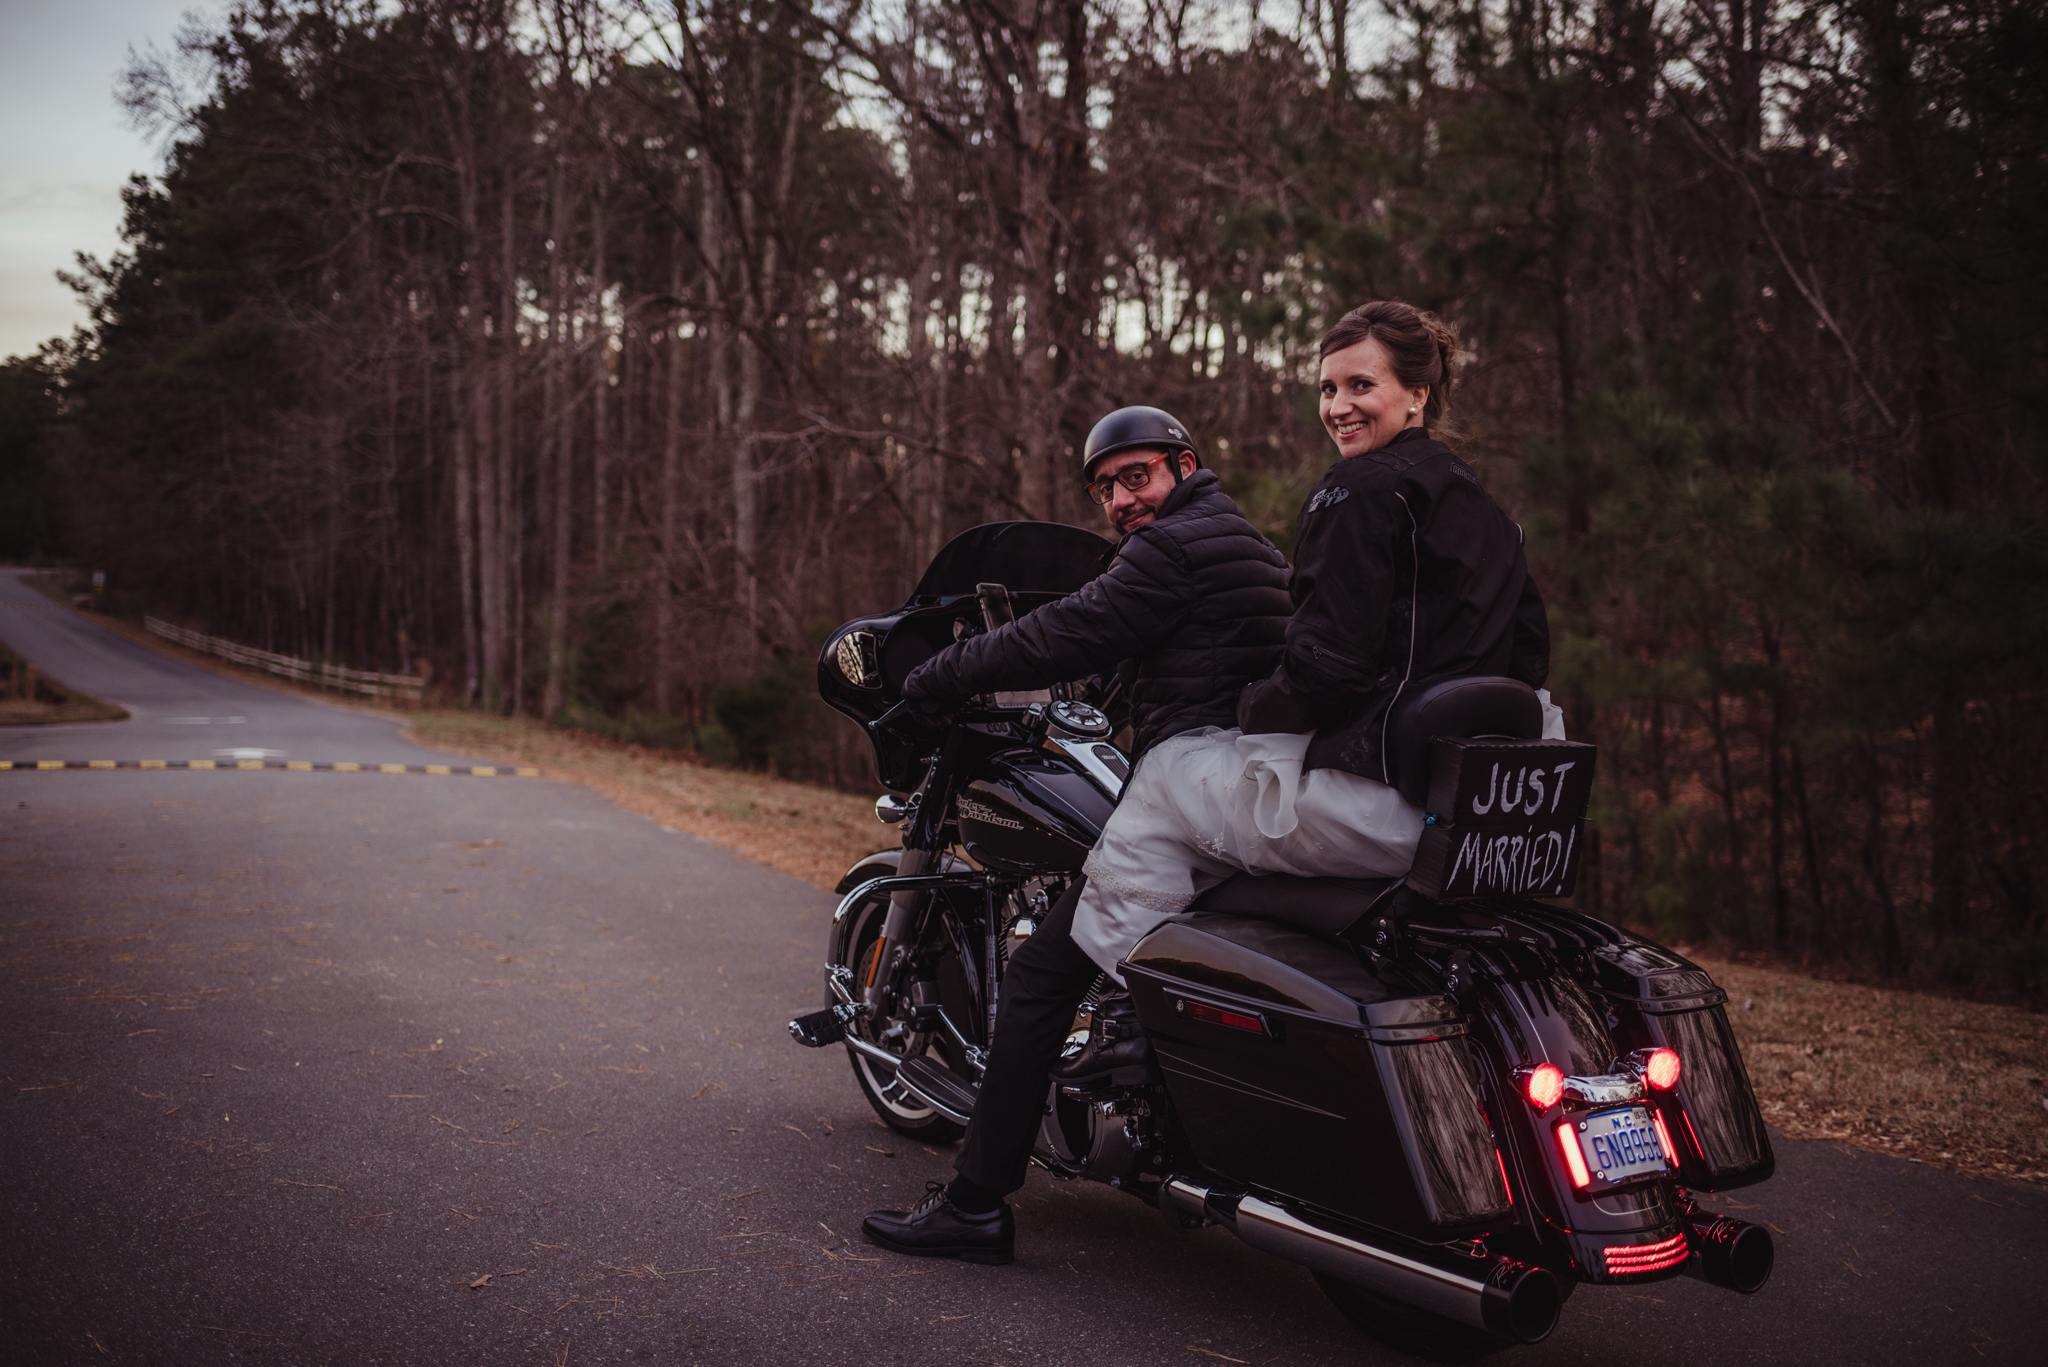 the-bride-and-groom-get-set-to-ride-off-on-their-motorcycle-after-getting-married-in-raleigh.jpg